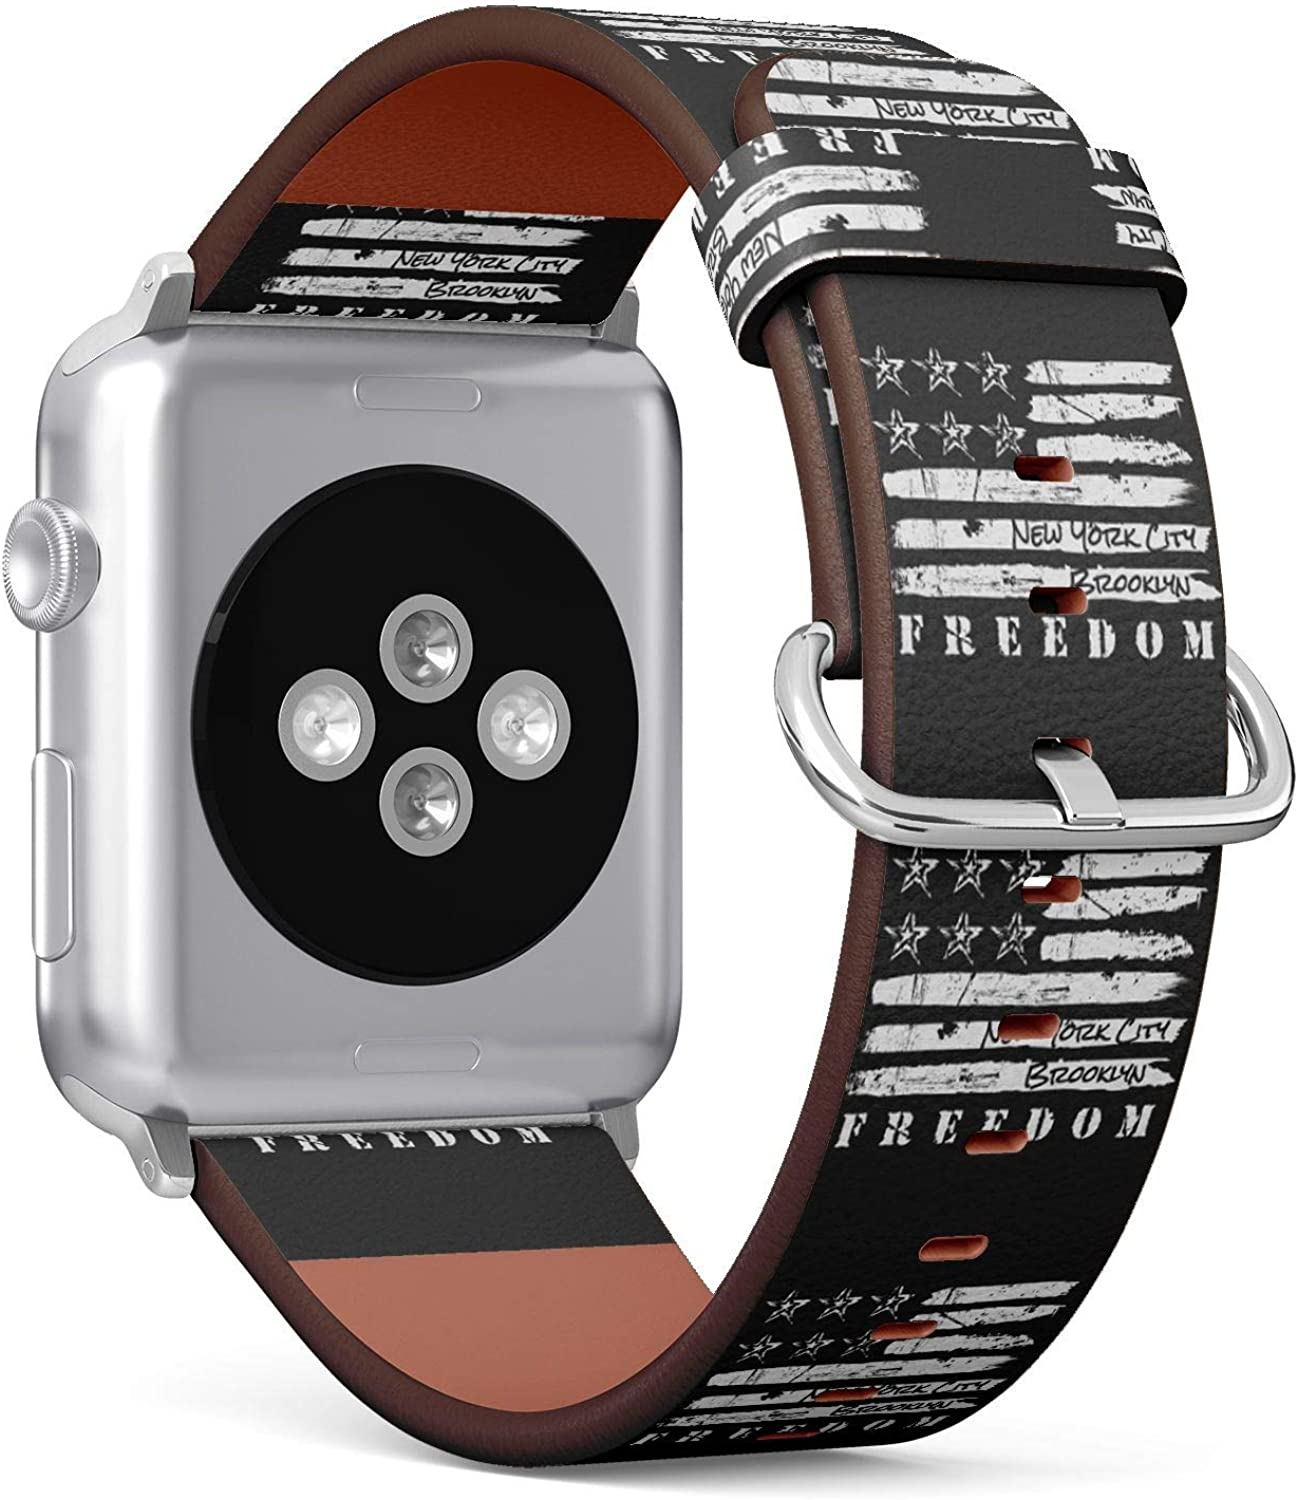 (Stylized American Flag Theme in New York City, Brooklyn and Freedom.) Patterned Leather Wristband Strap for Apple Watch Series 4/3/2/1 gen,Replacement for iWatch 38mm / 40mm Bands